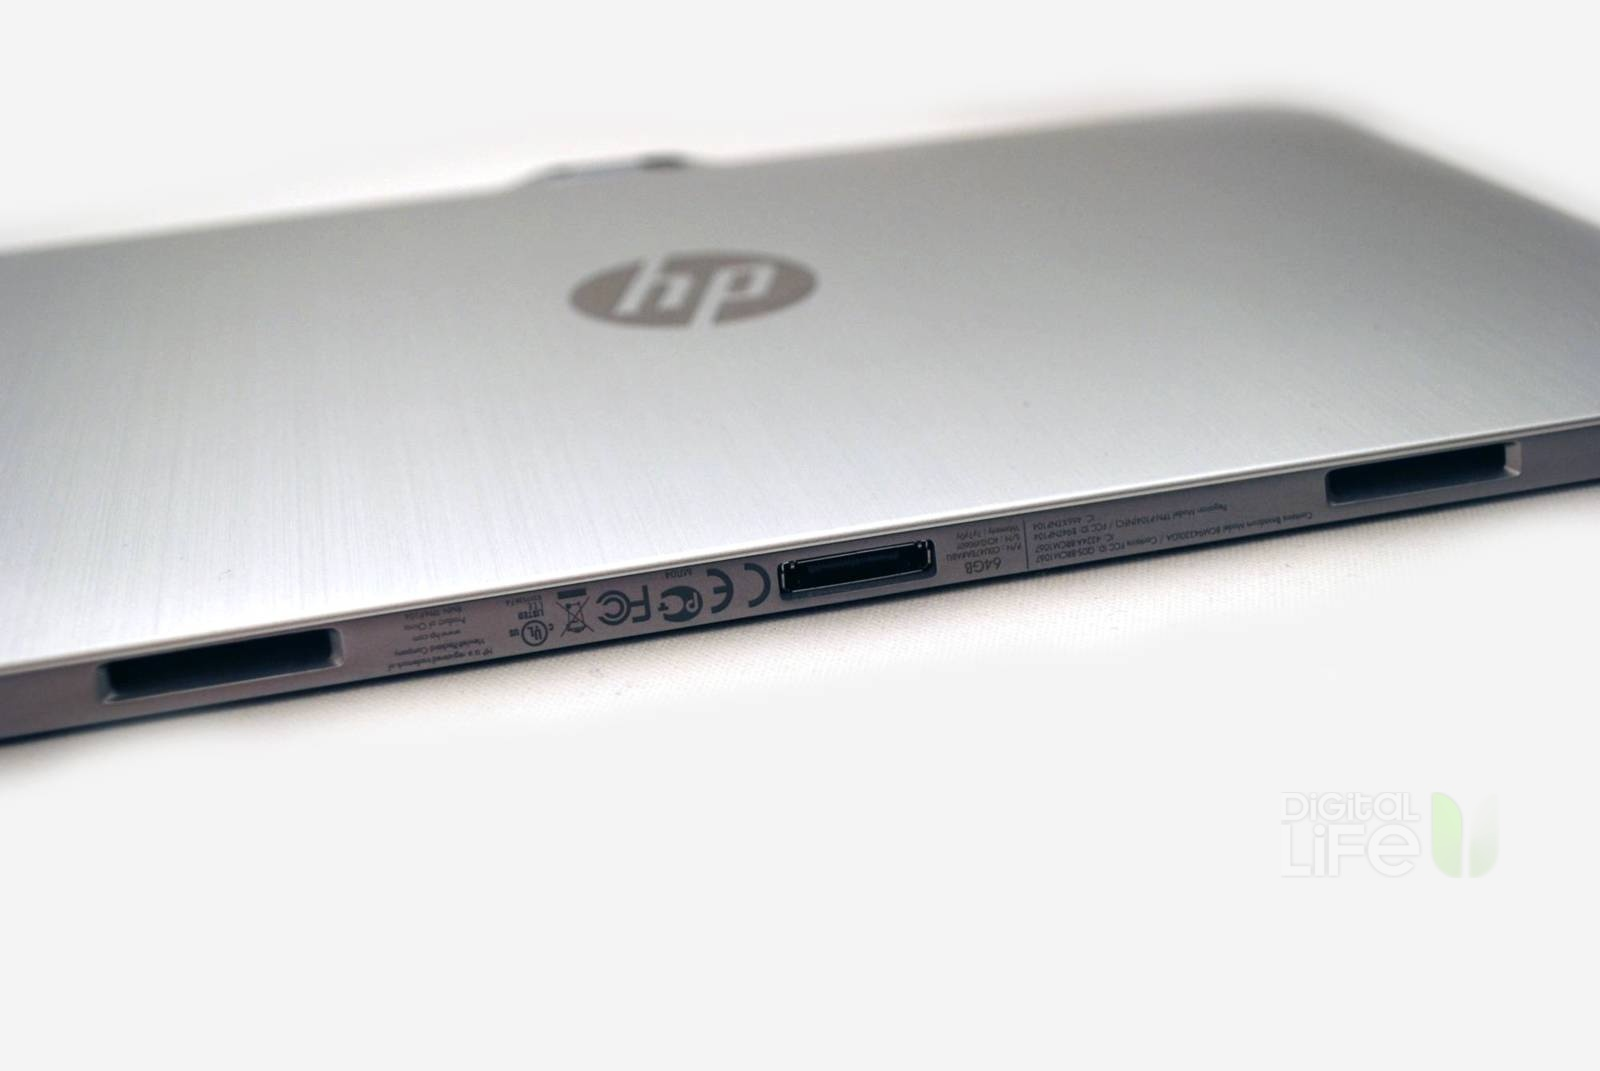 Hp envy 700 review uk dating 3